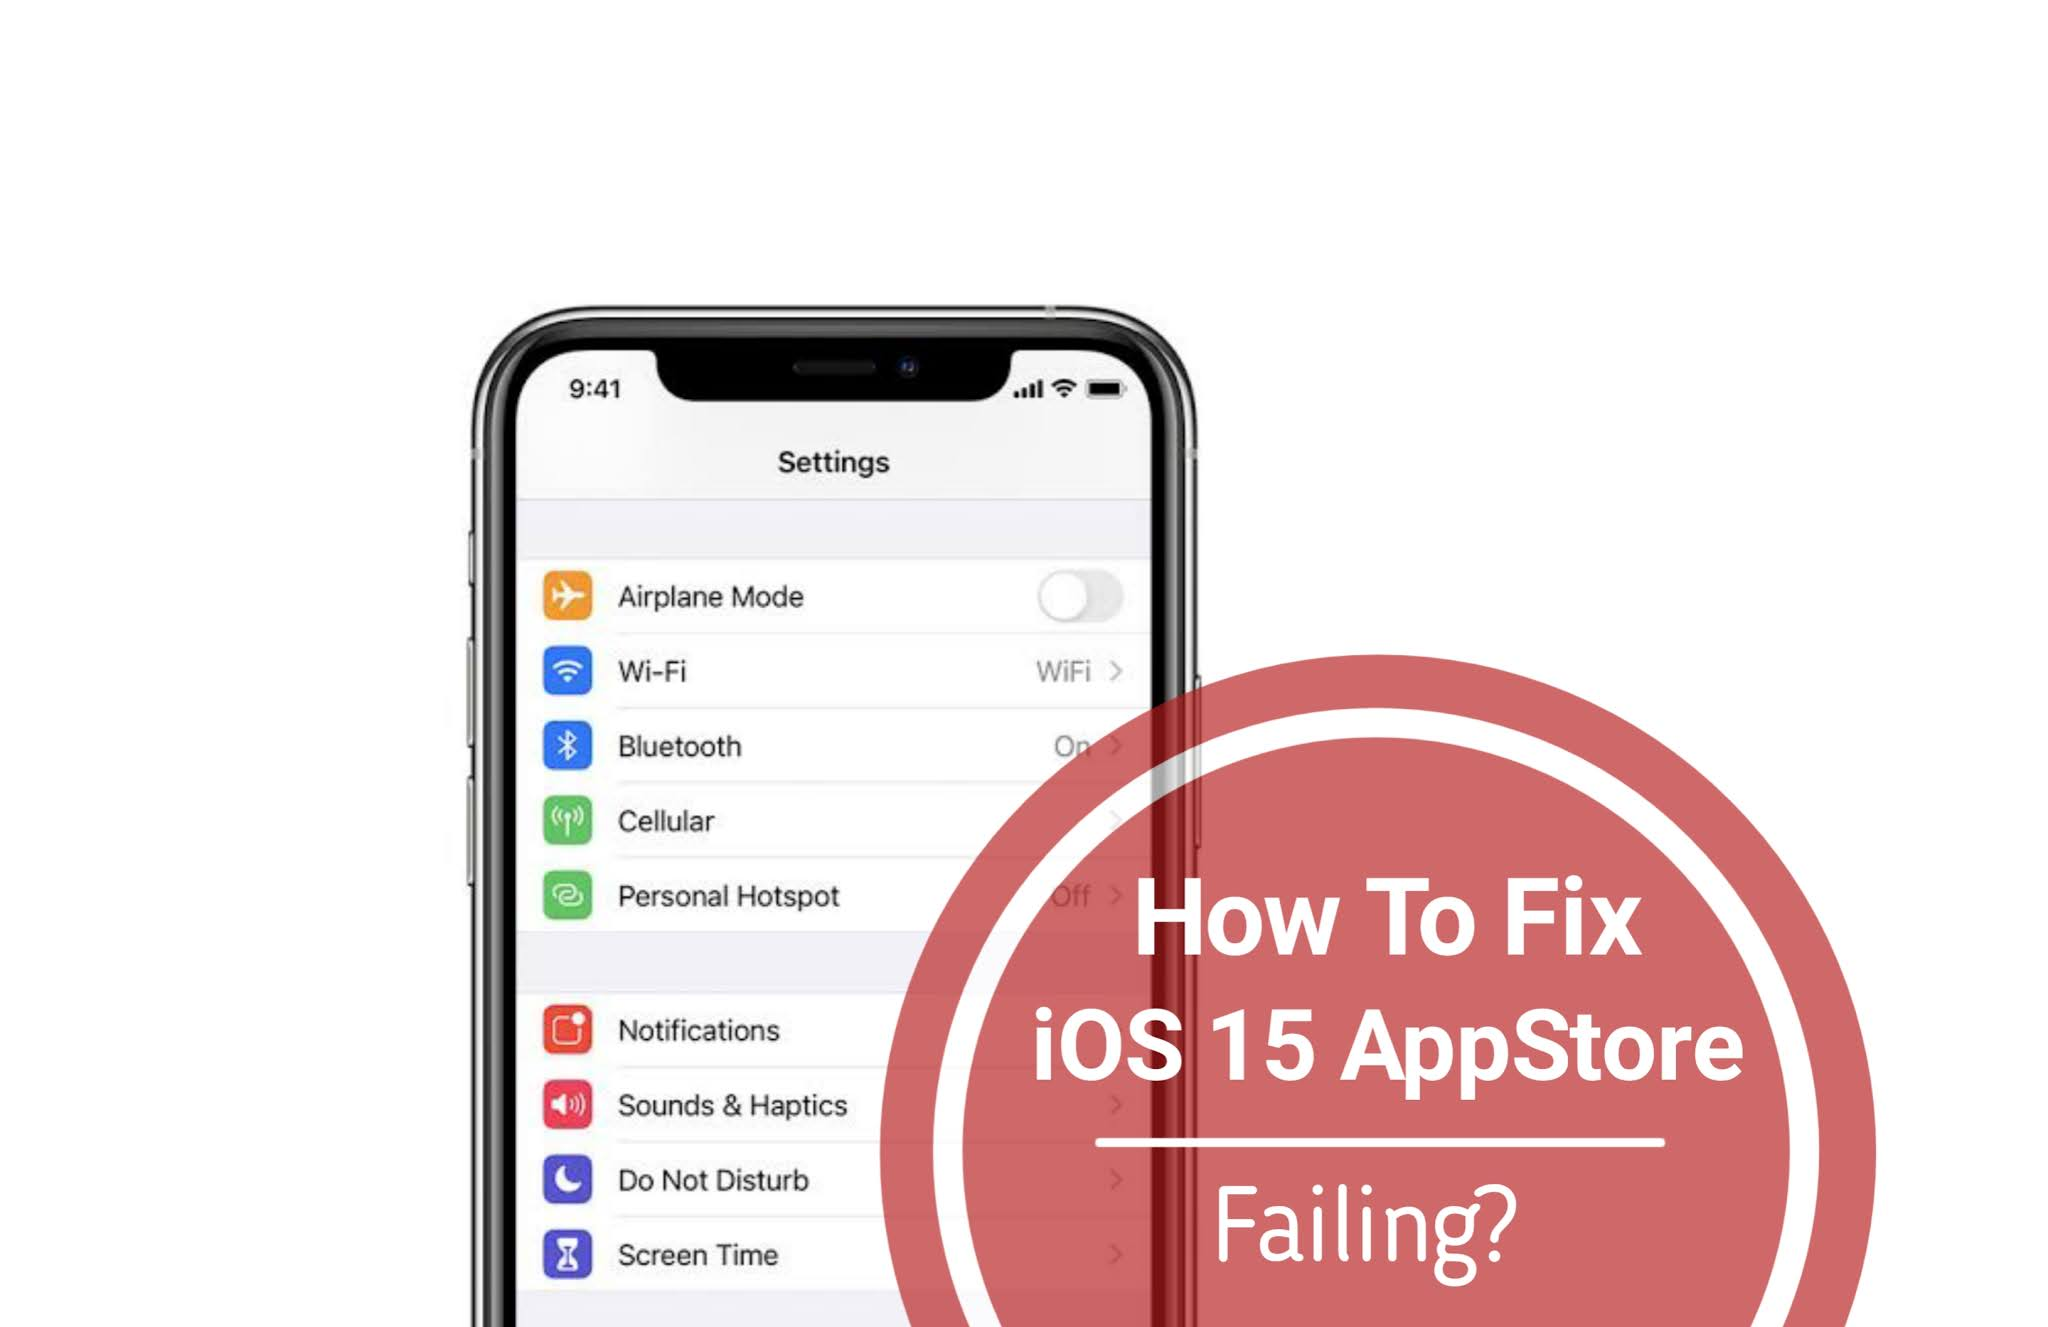 How To Fix iOS 15 AppStore Downloads Not Working